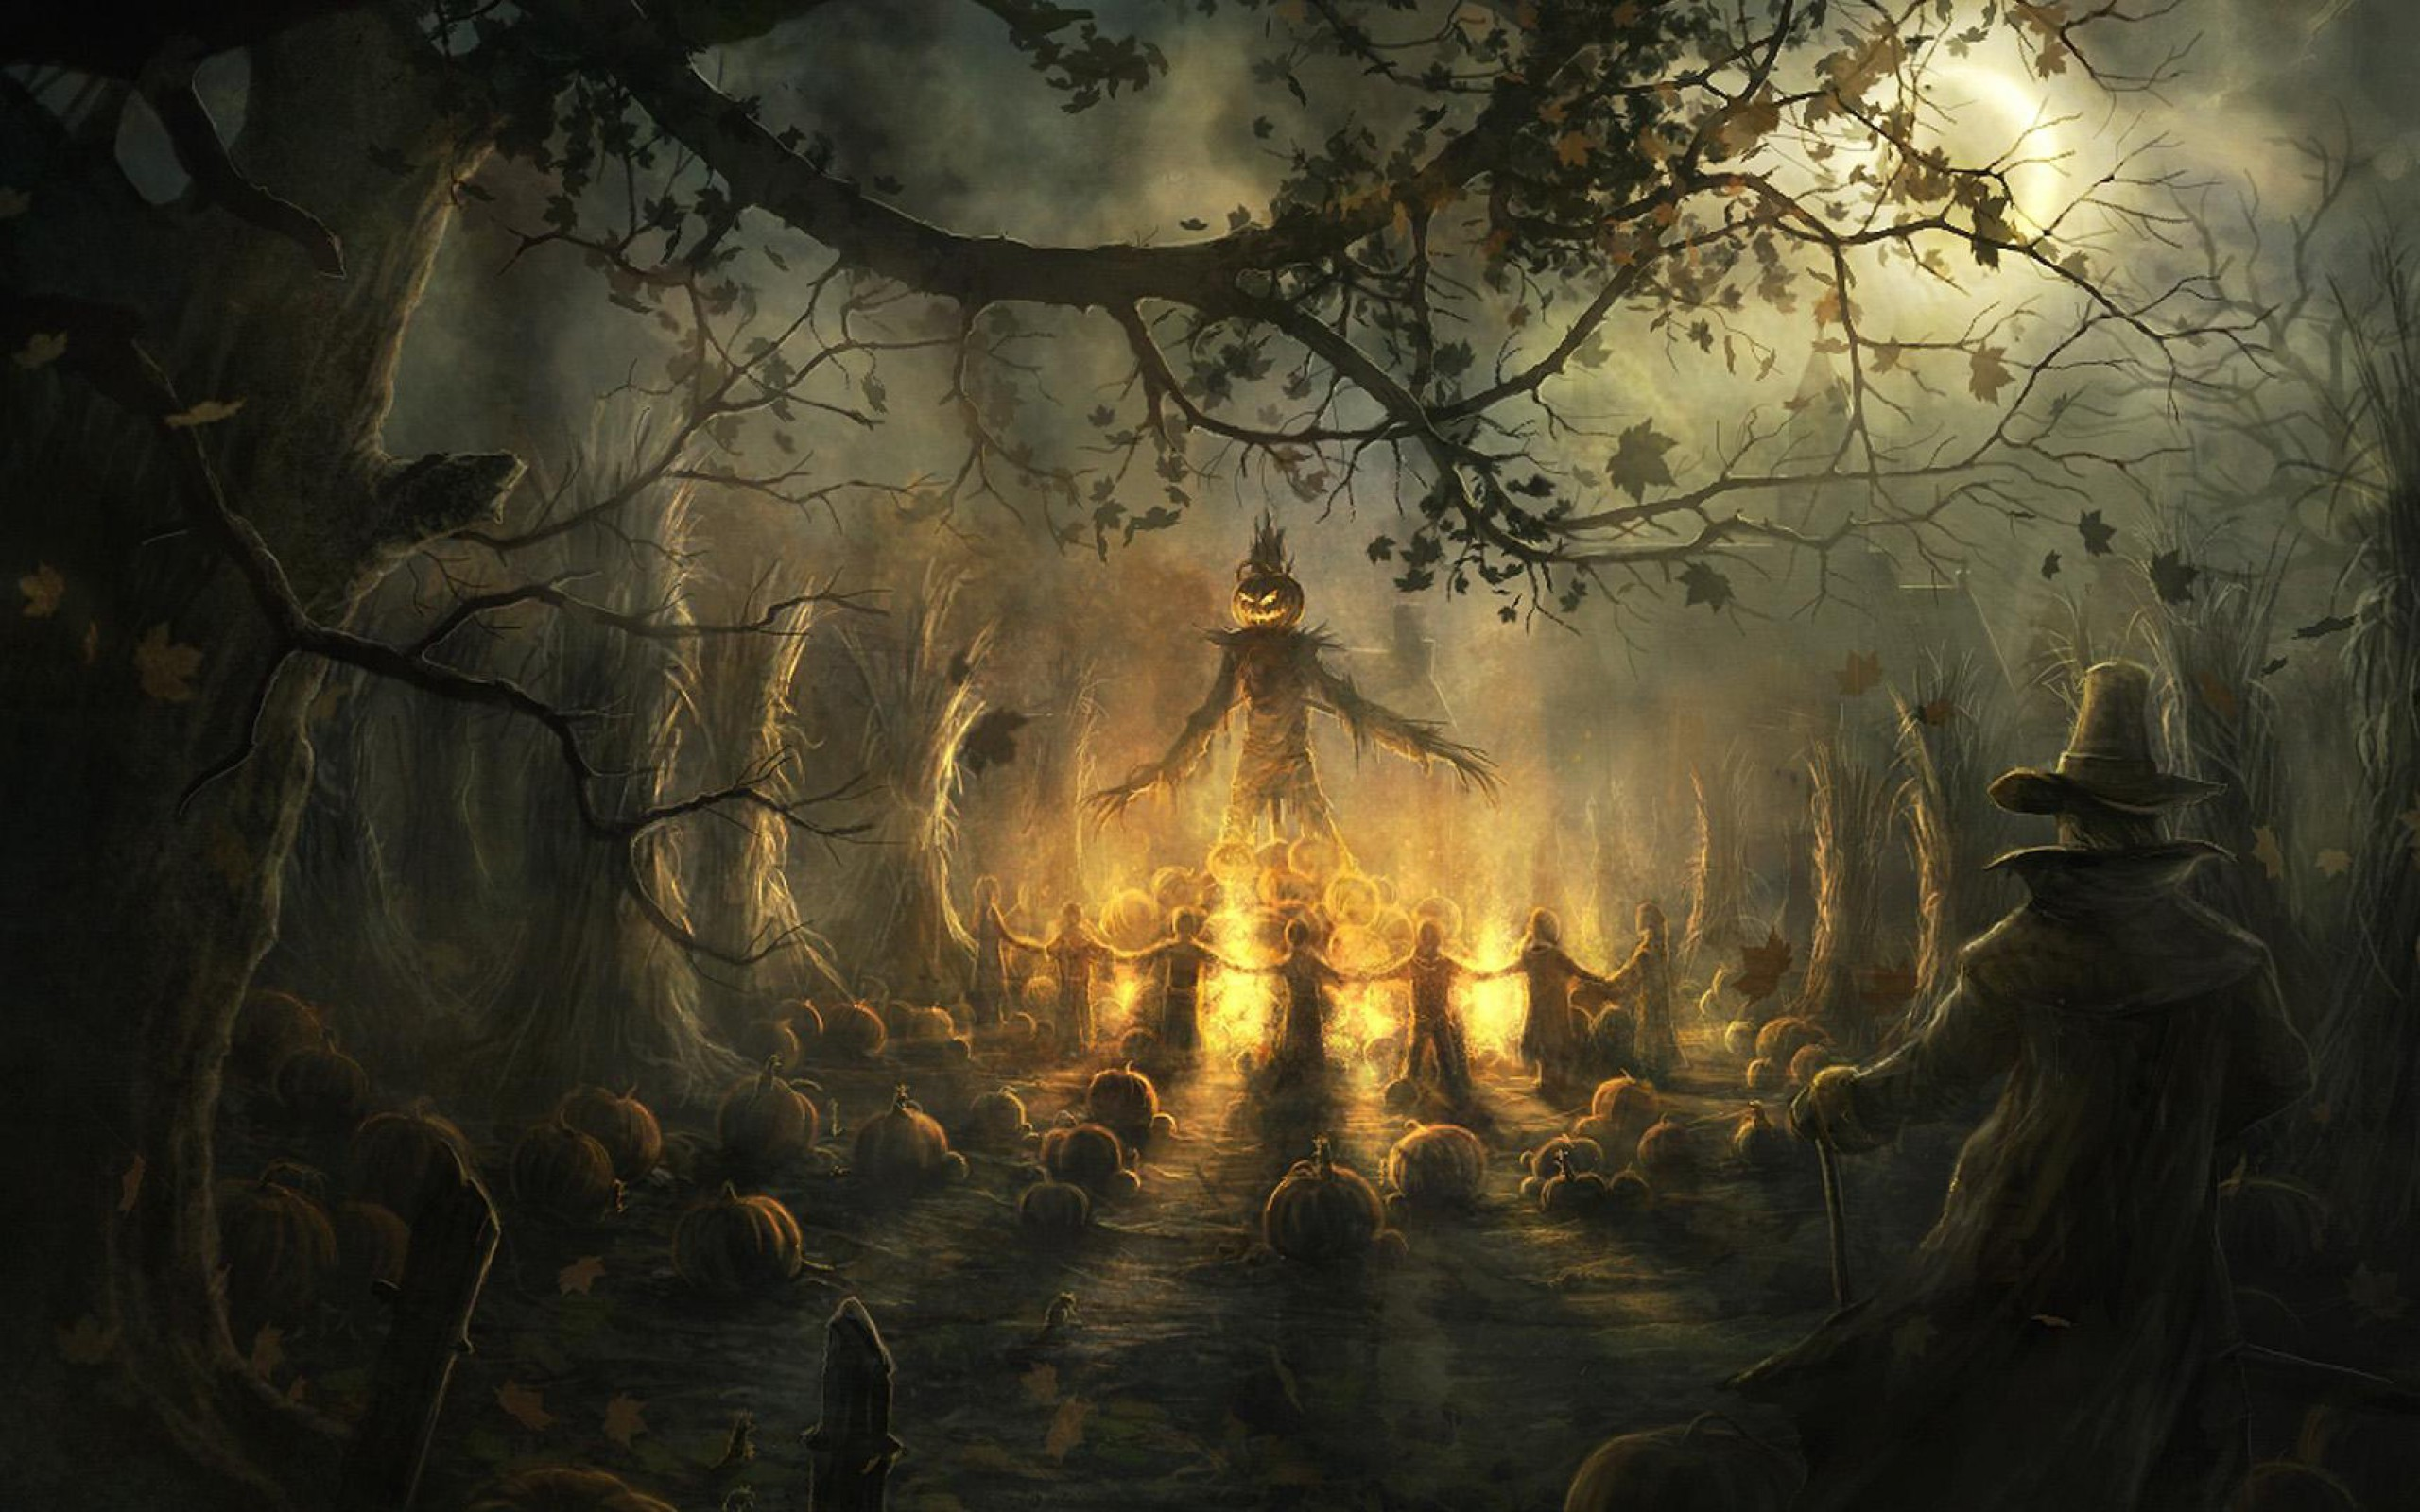 Scary Halloween Wallpapers For Desktop 54 Images